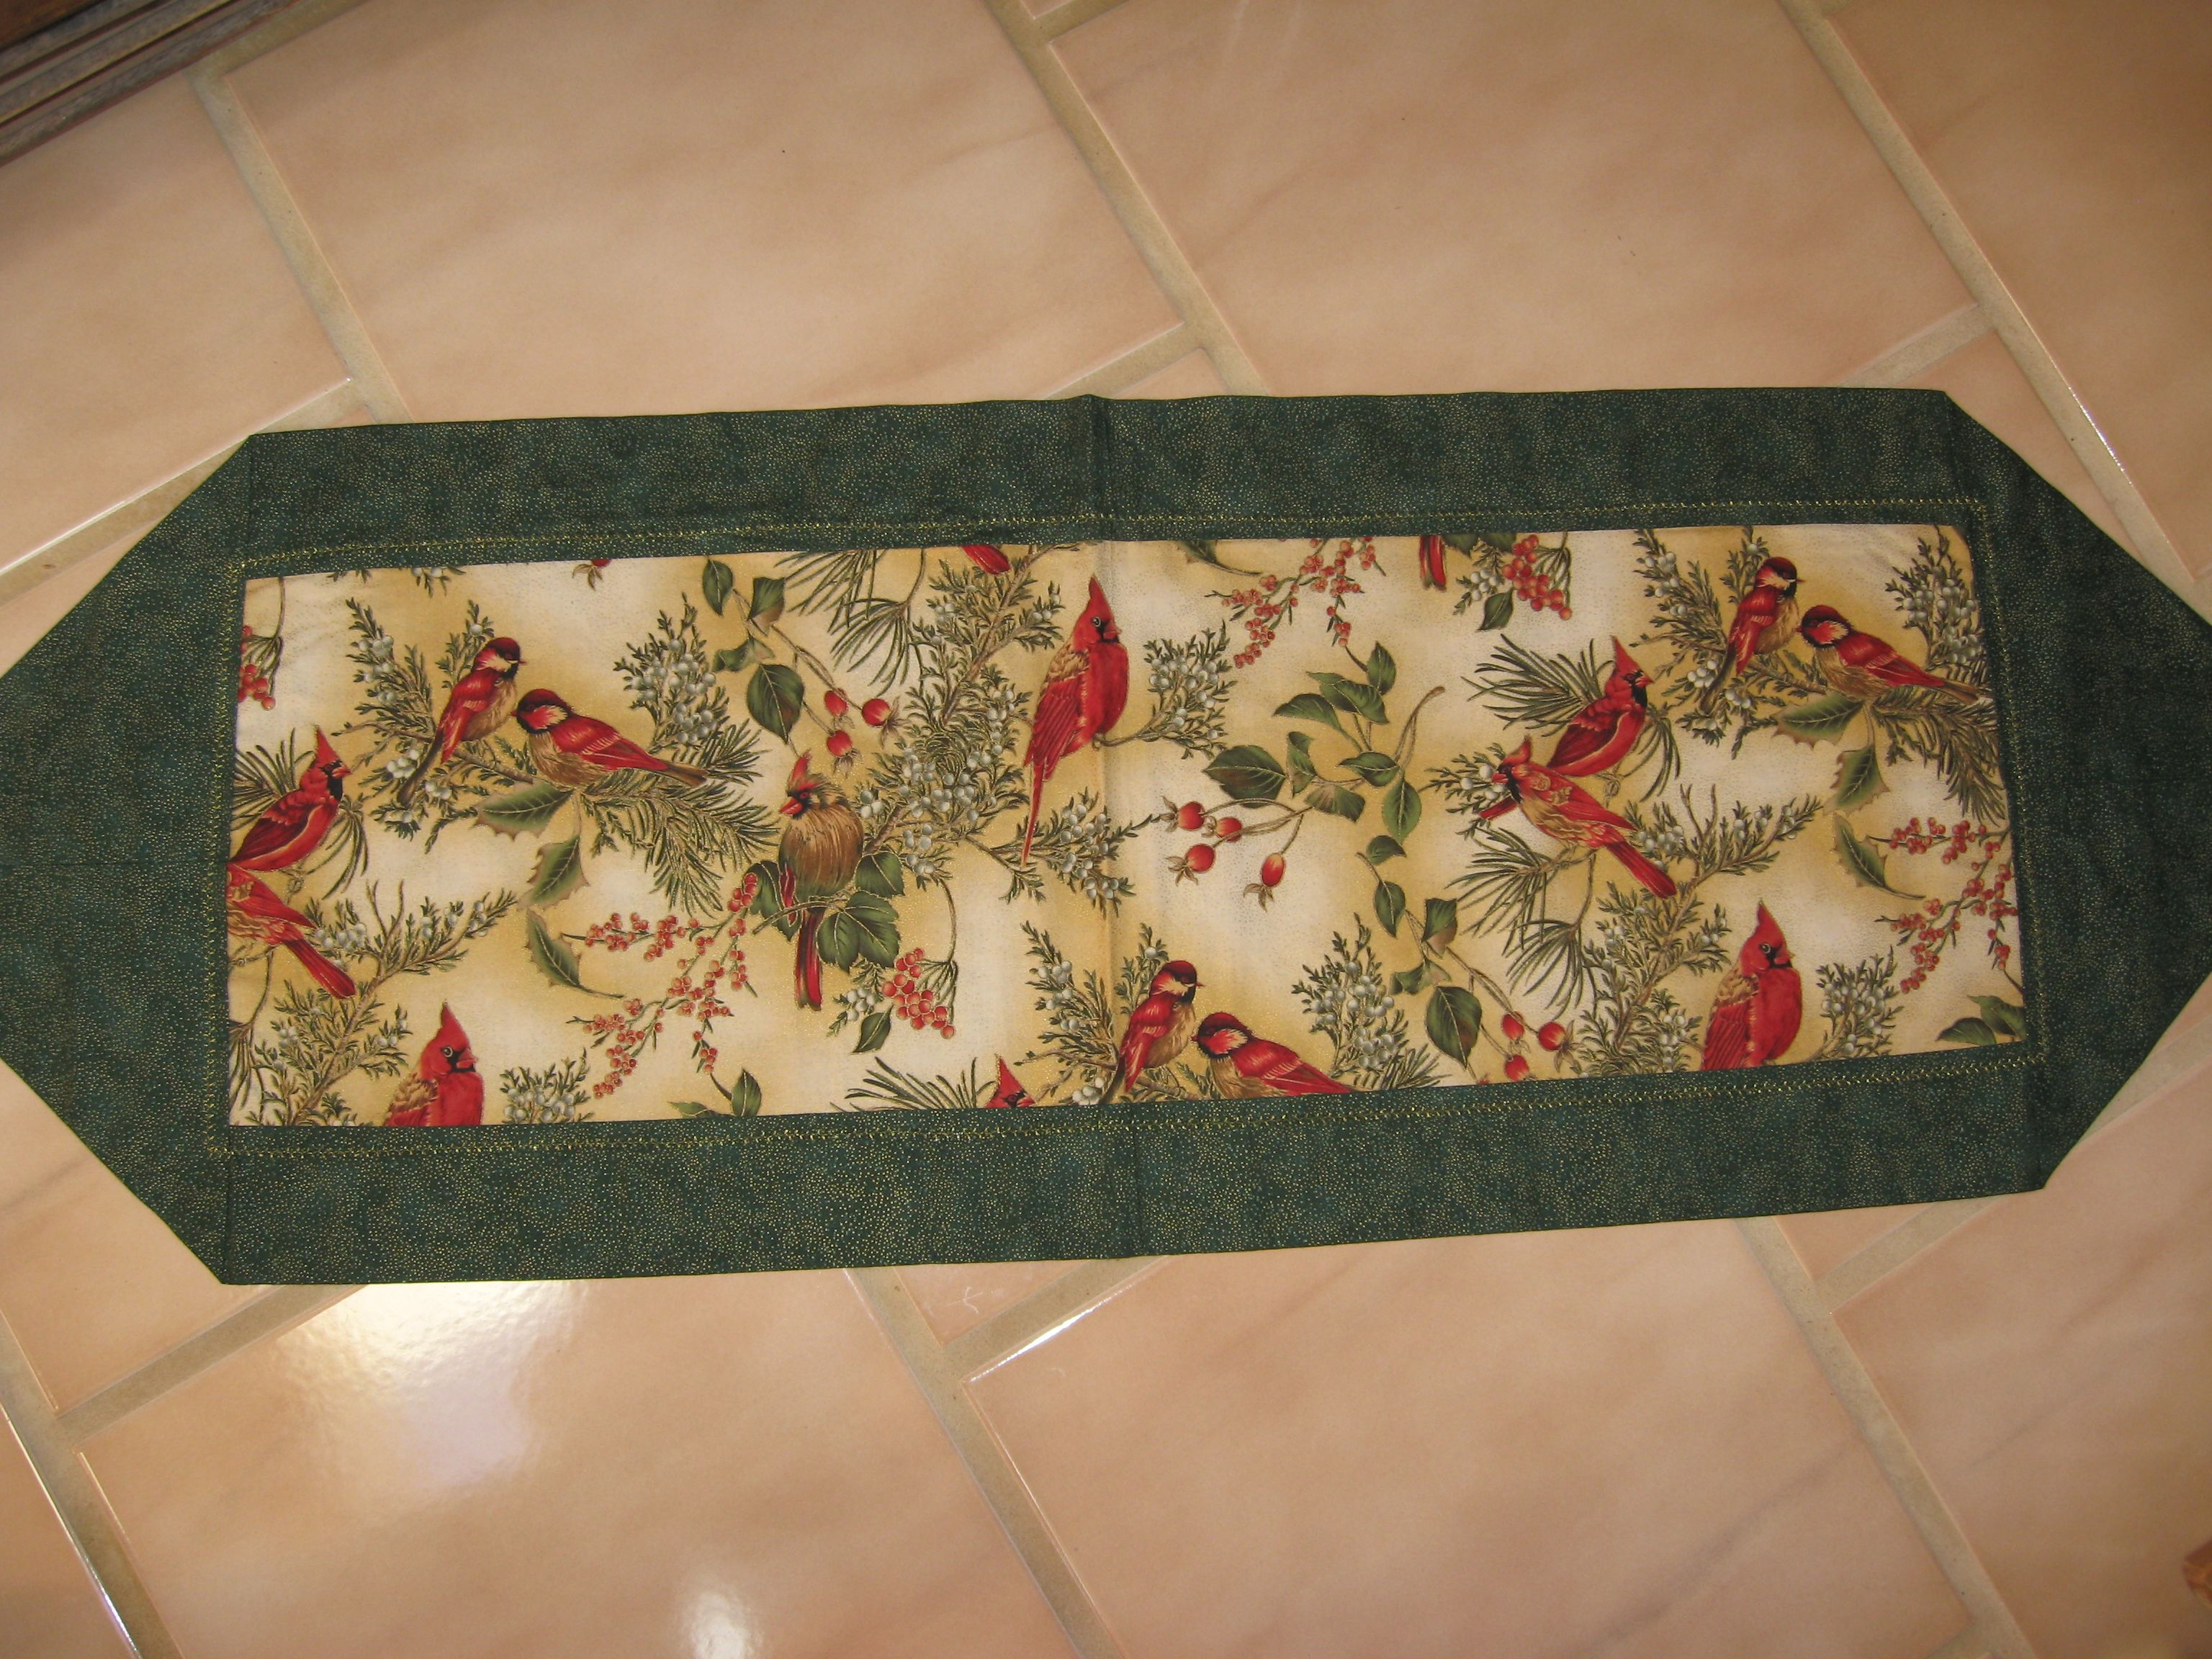 10 Minute Table Runner 10 Minute Table Runner Table Runners Table Runner Pattern